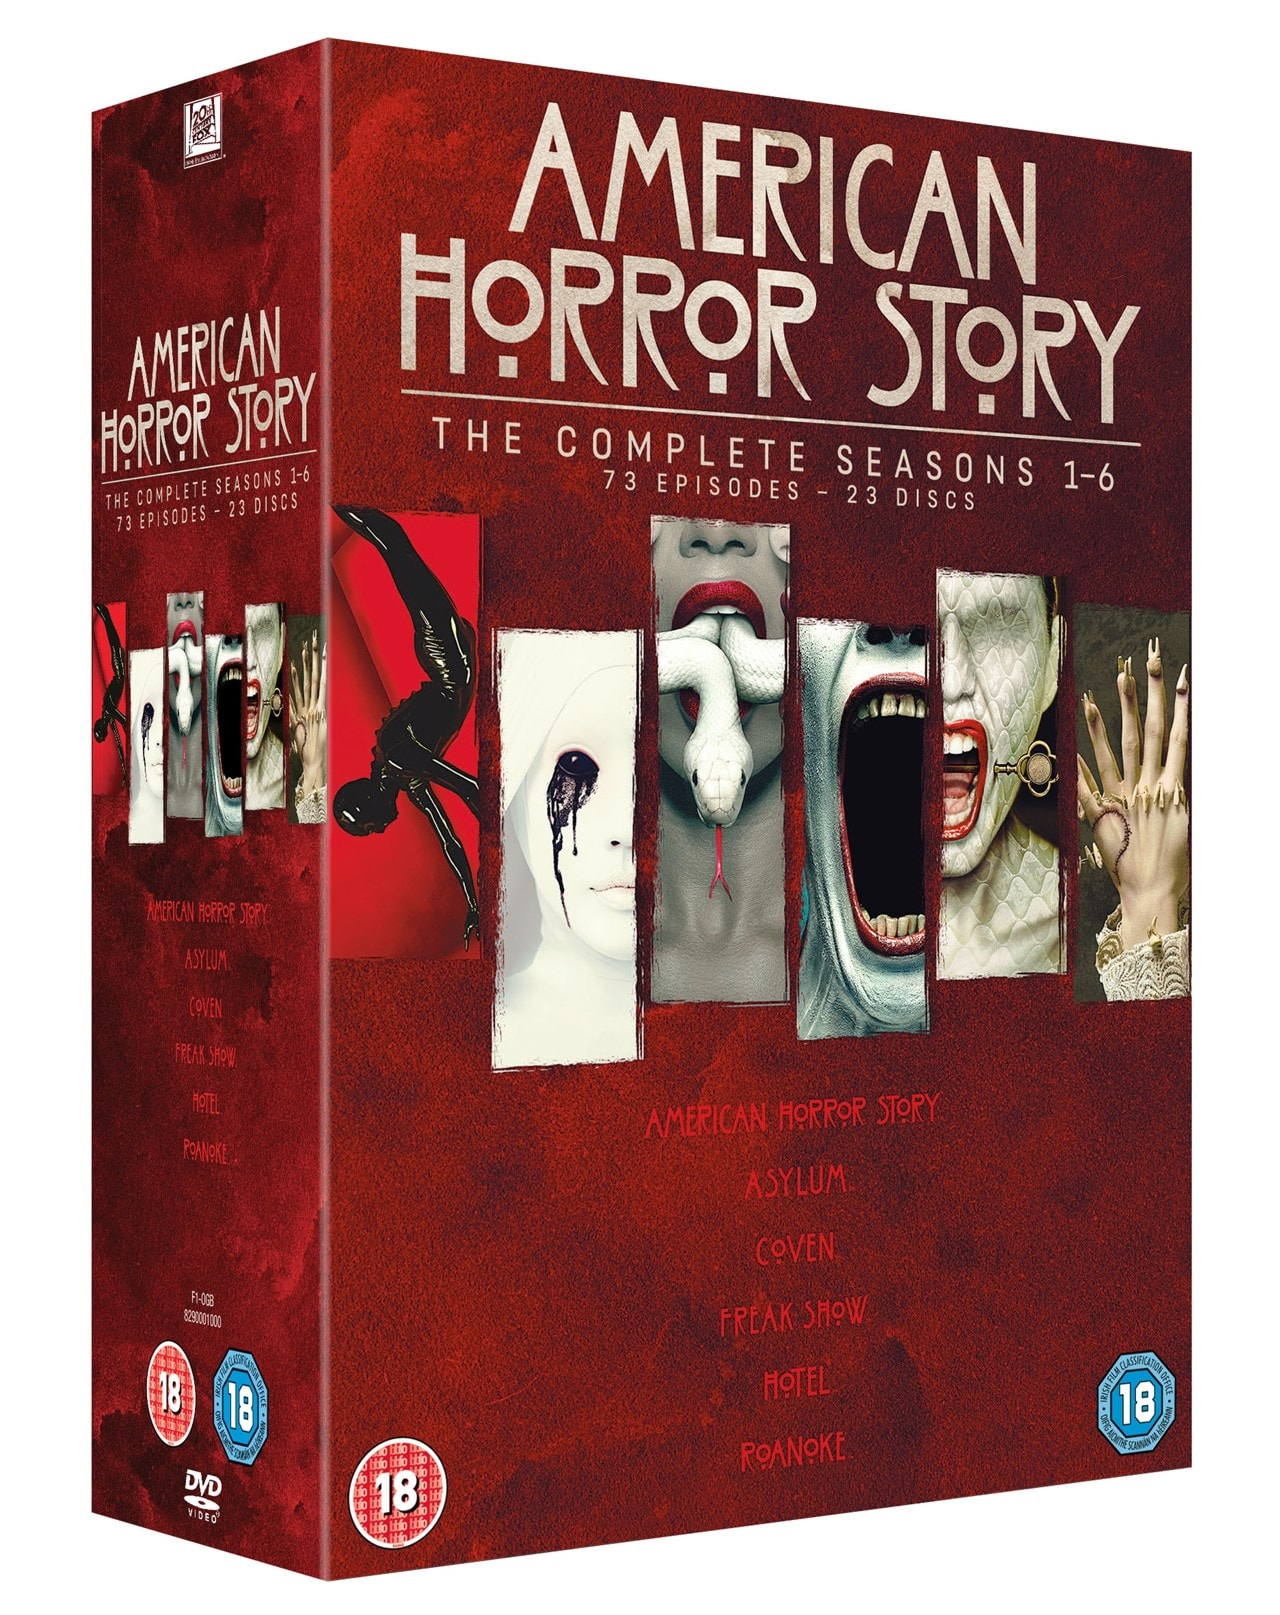 American Horror Story: The Complete Seasons 1-6 - 2